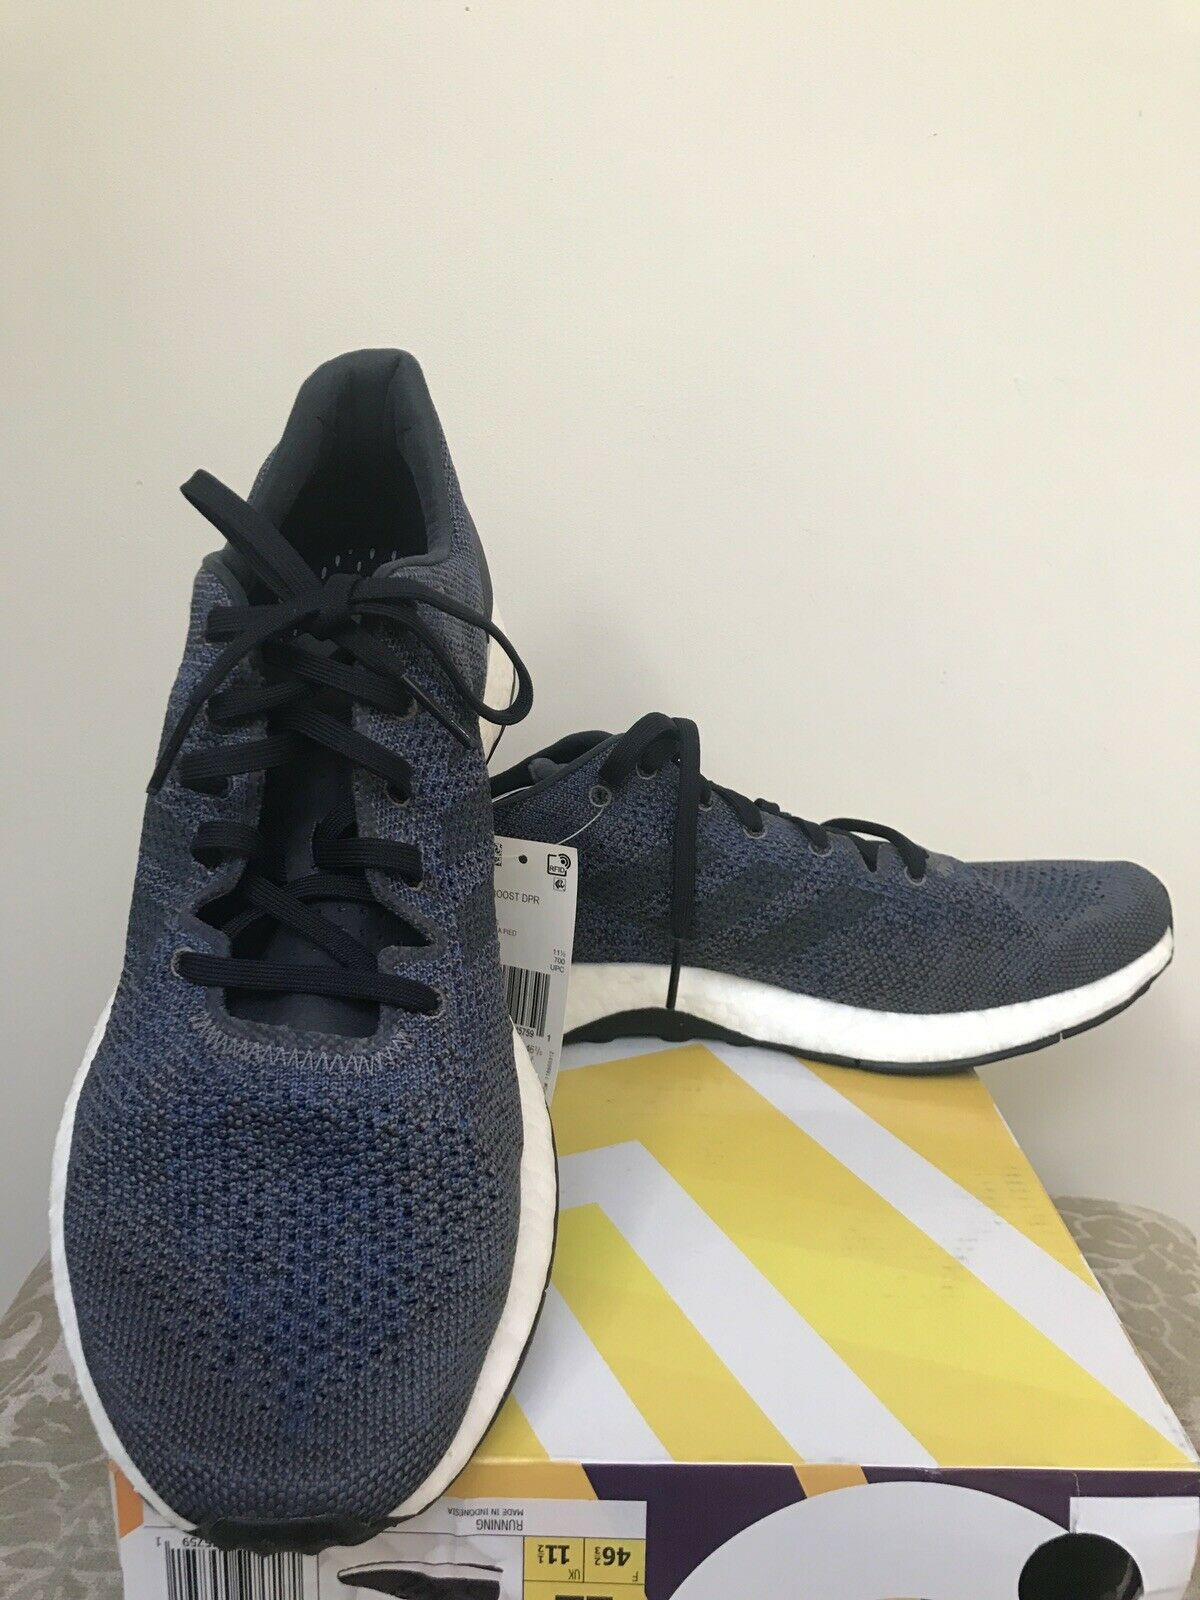 Adidas PureBoost DPR Men's Athletic shoes BB6293 Size US12 New